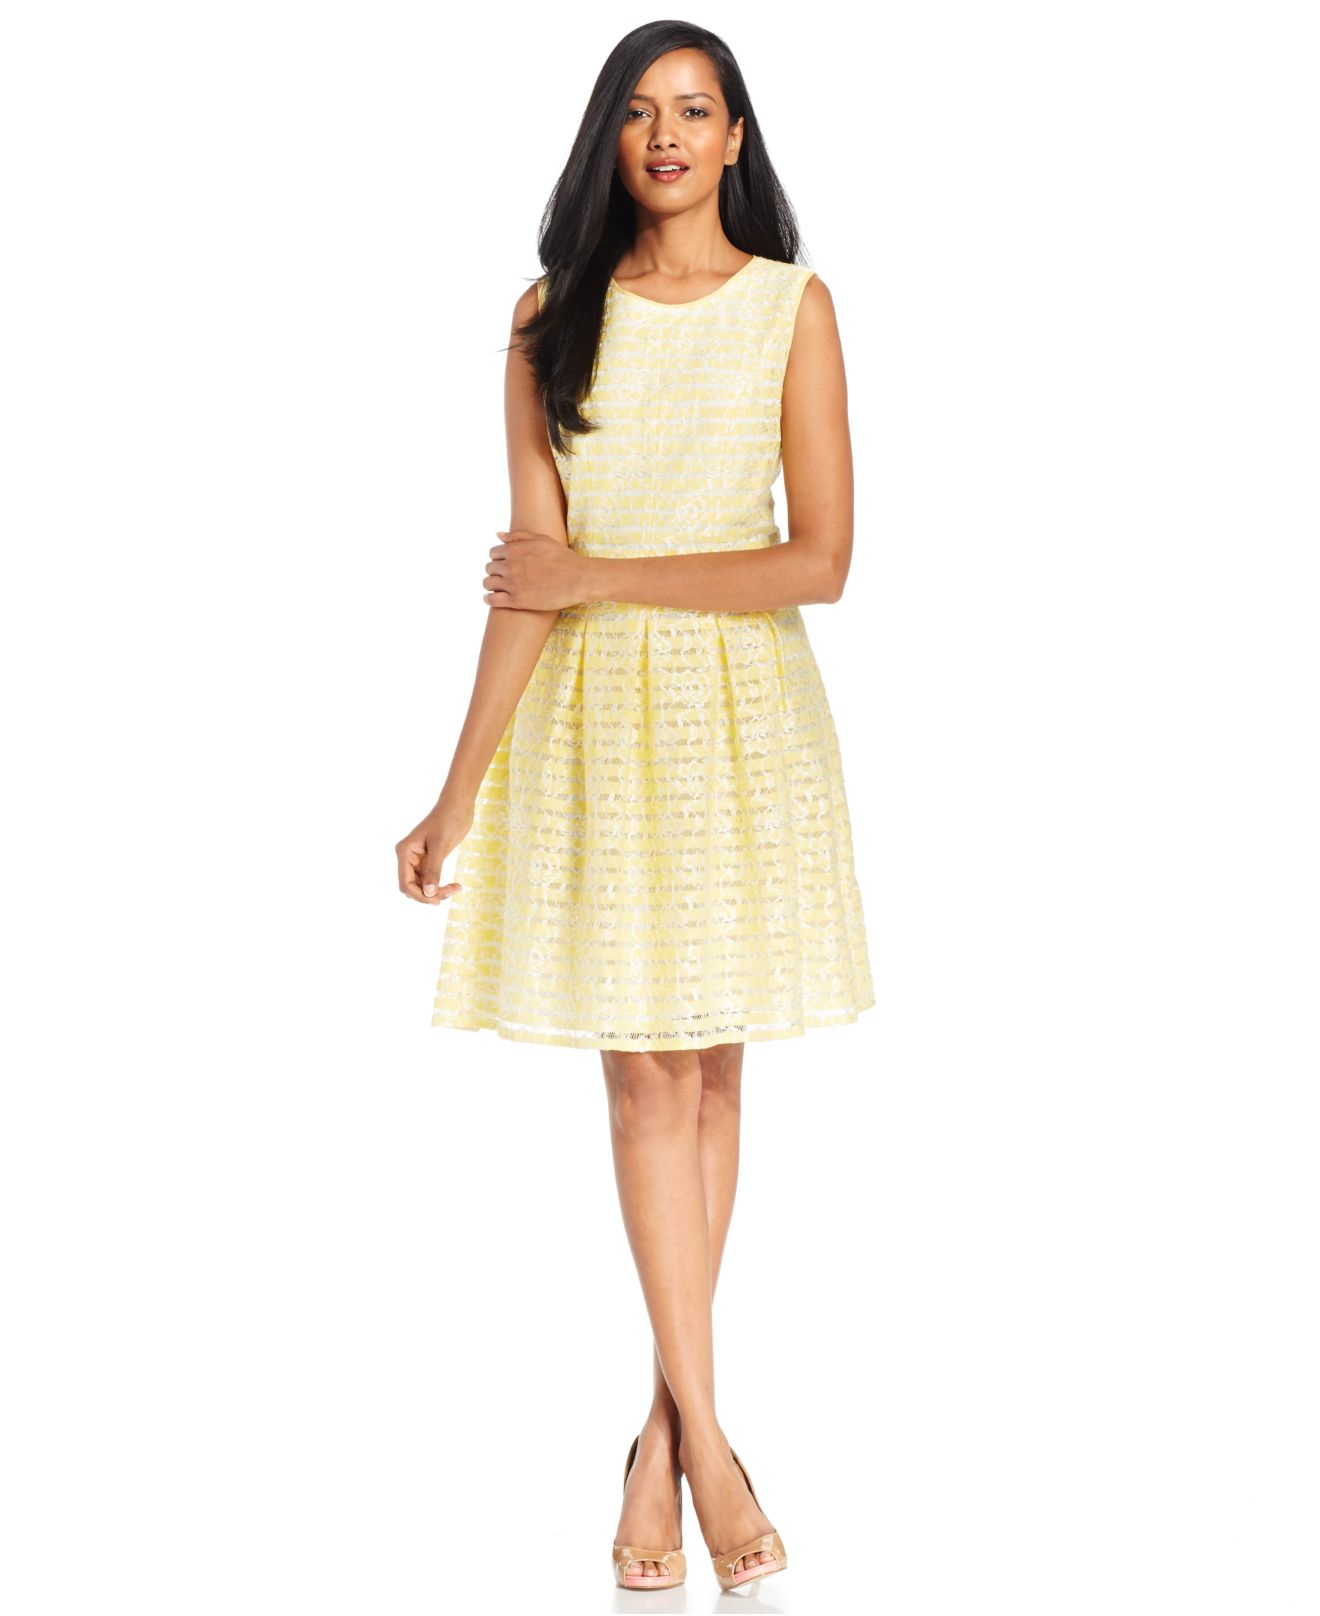 f87cf3361bcf0 Lyst - Nine West Striped Lace A-line Dress in Yellow